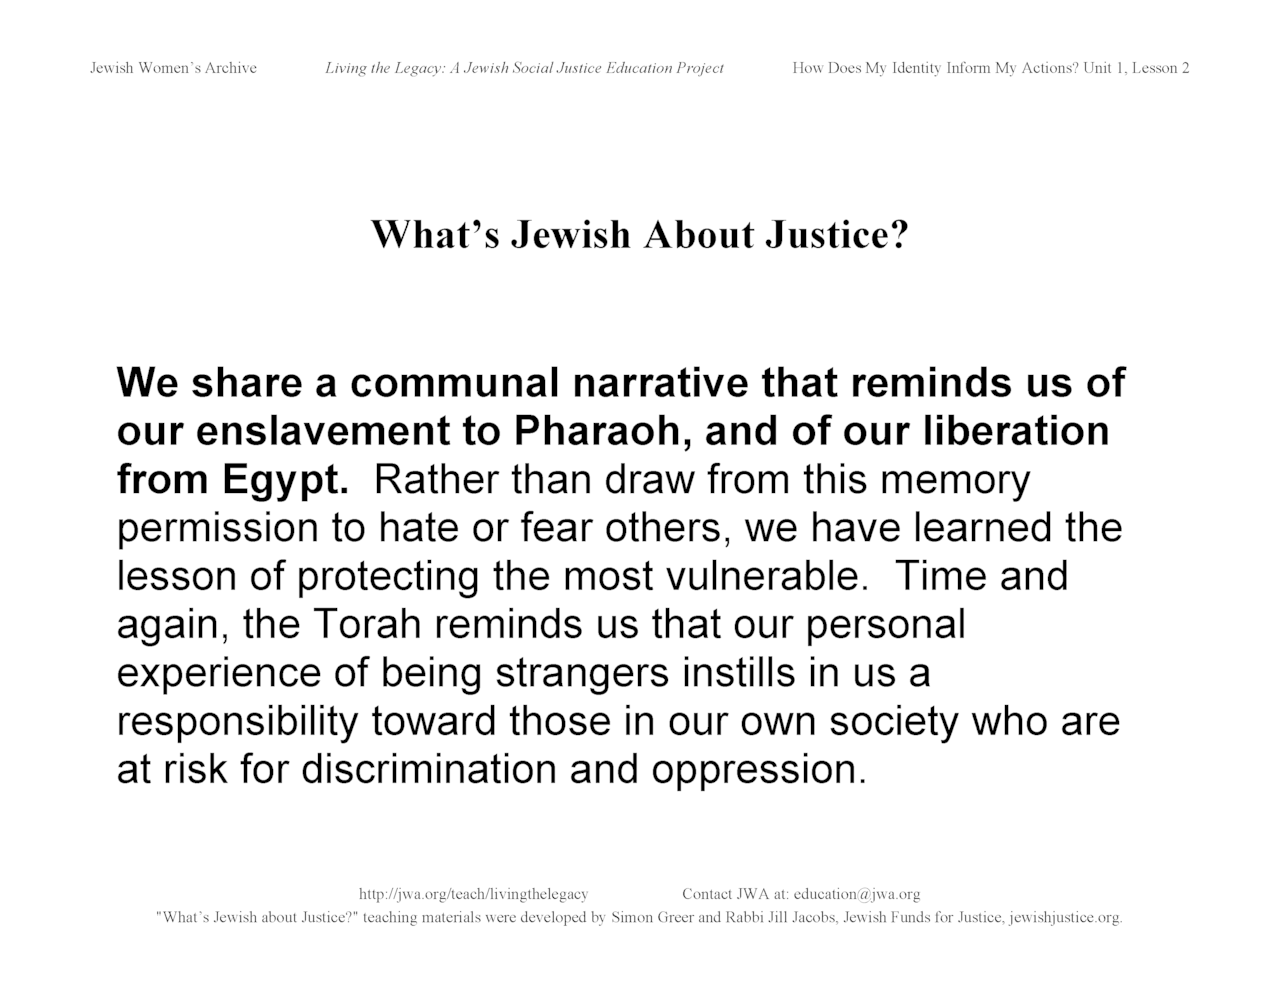 """What's Jewish About Justice?"" signs: We share a communal narrative"